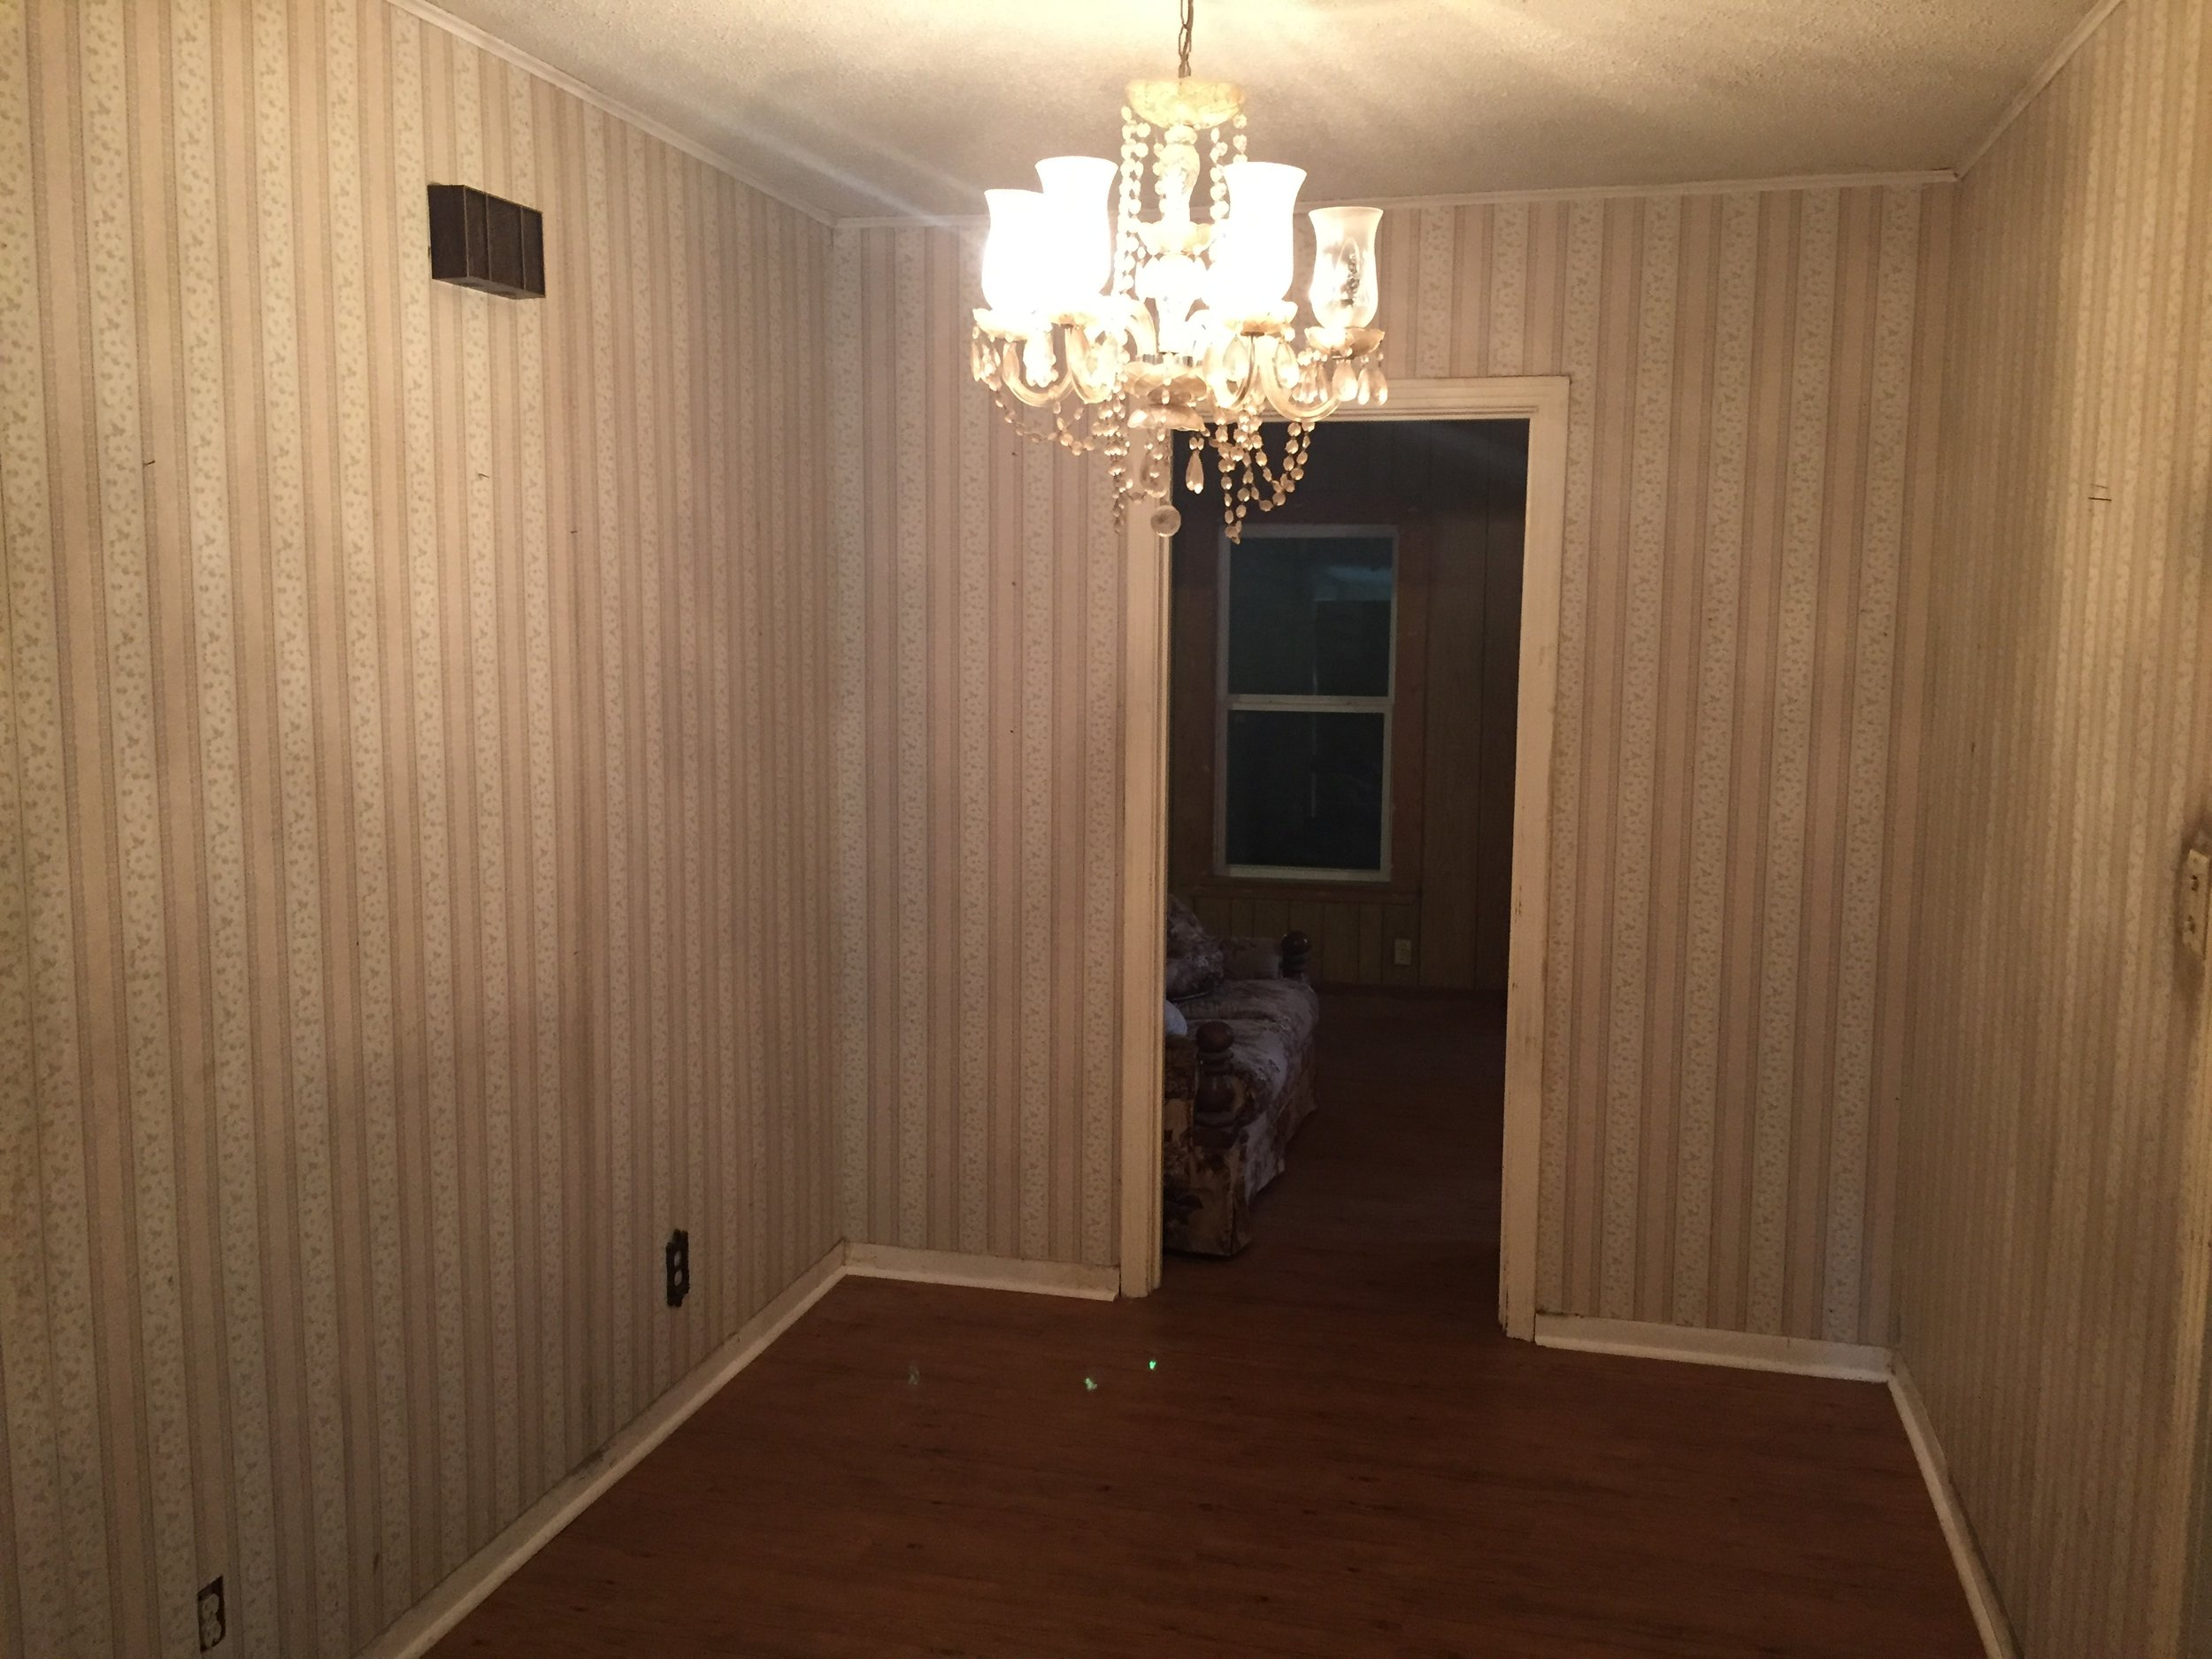 Dining Room Before - yikes wallpaper! Keeping the chandelier was better in theory than in practice.